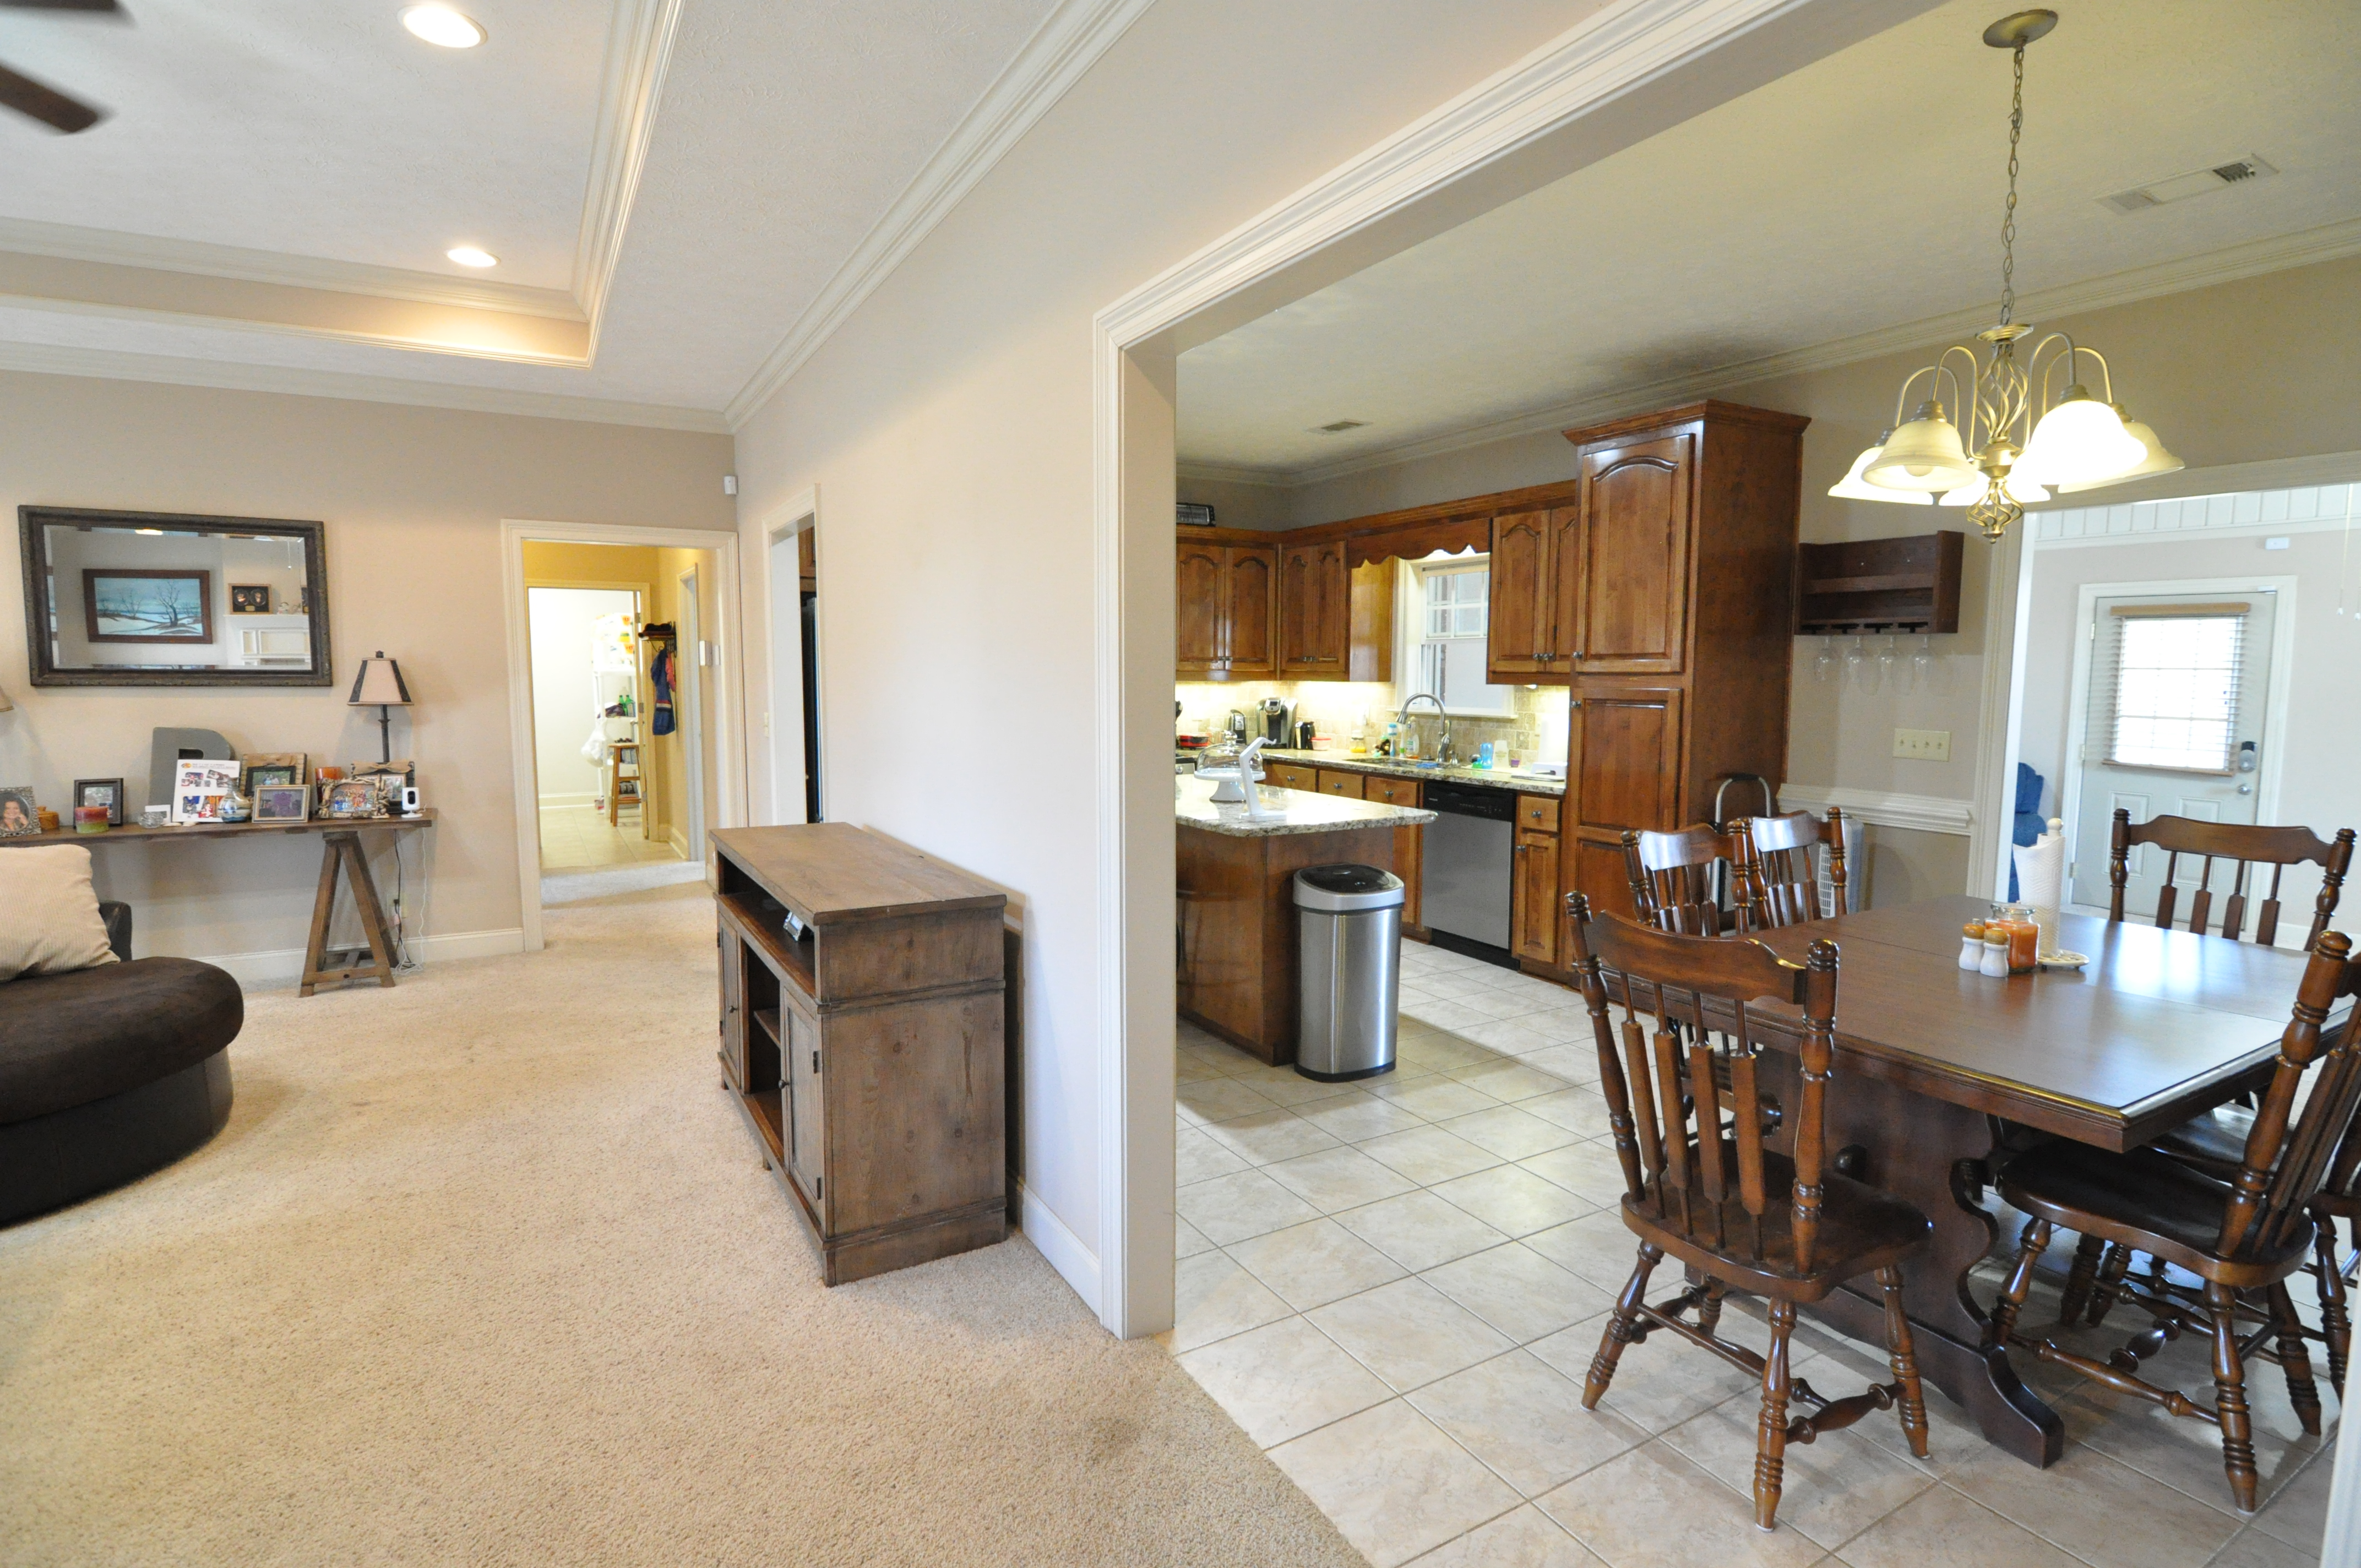 FOR SALE IN DEATSVILLE! 3 BED 2 BATH AT 369 SUMMERTIME PARKWAY